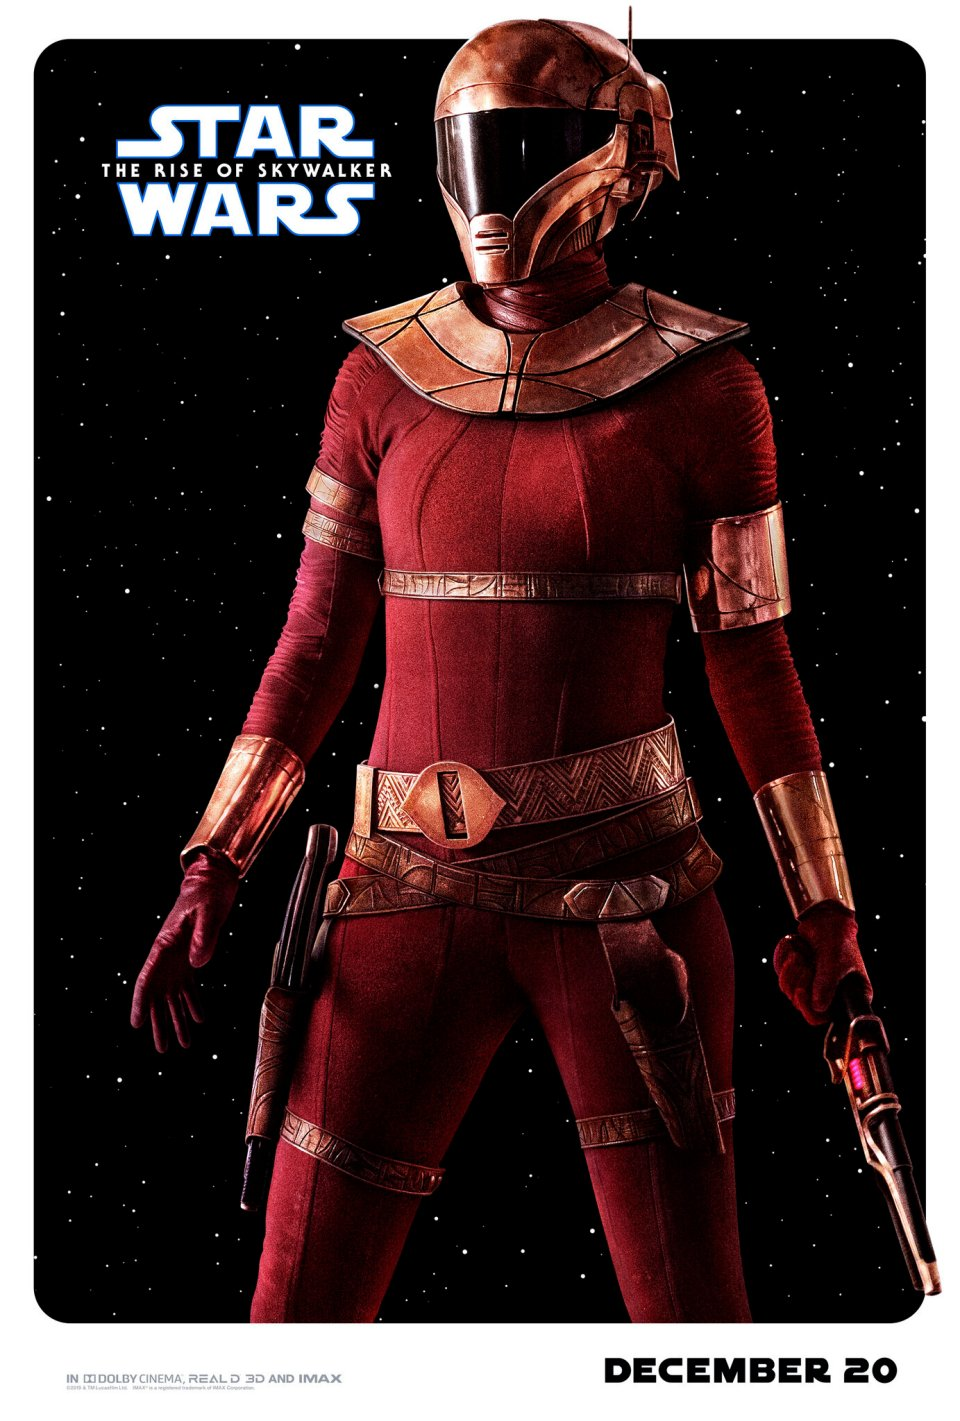 11-character-posters-released-for-star-wars-the-rise-of-skywalker8.jpg